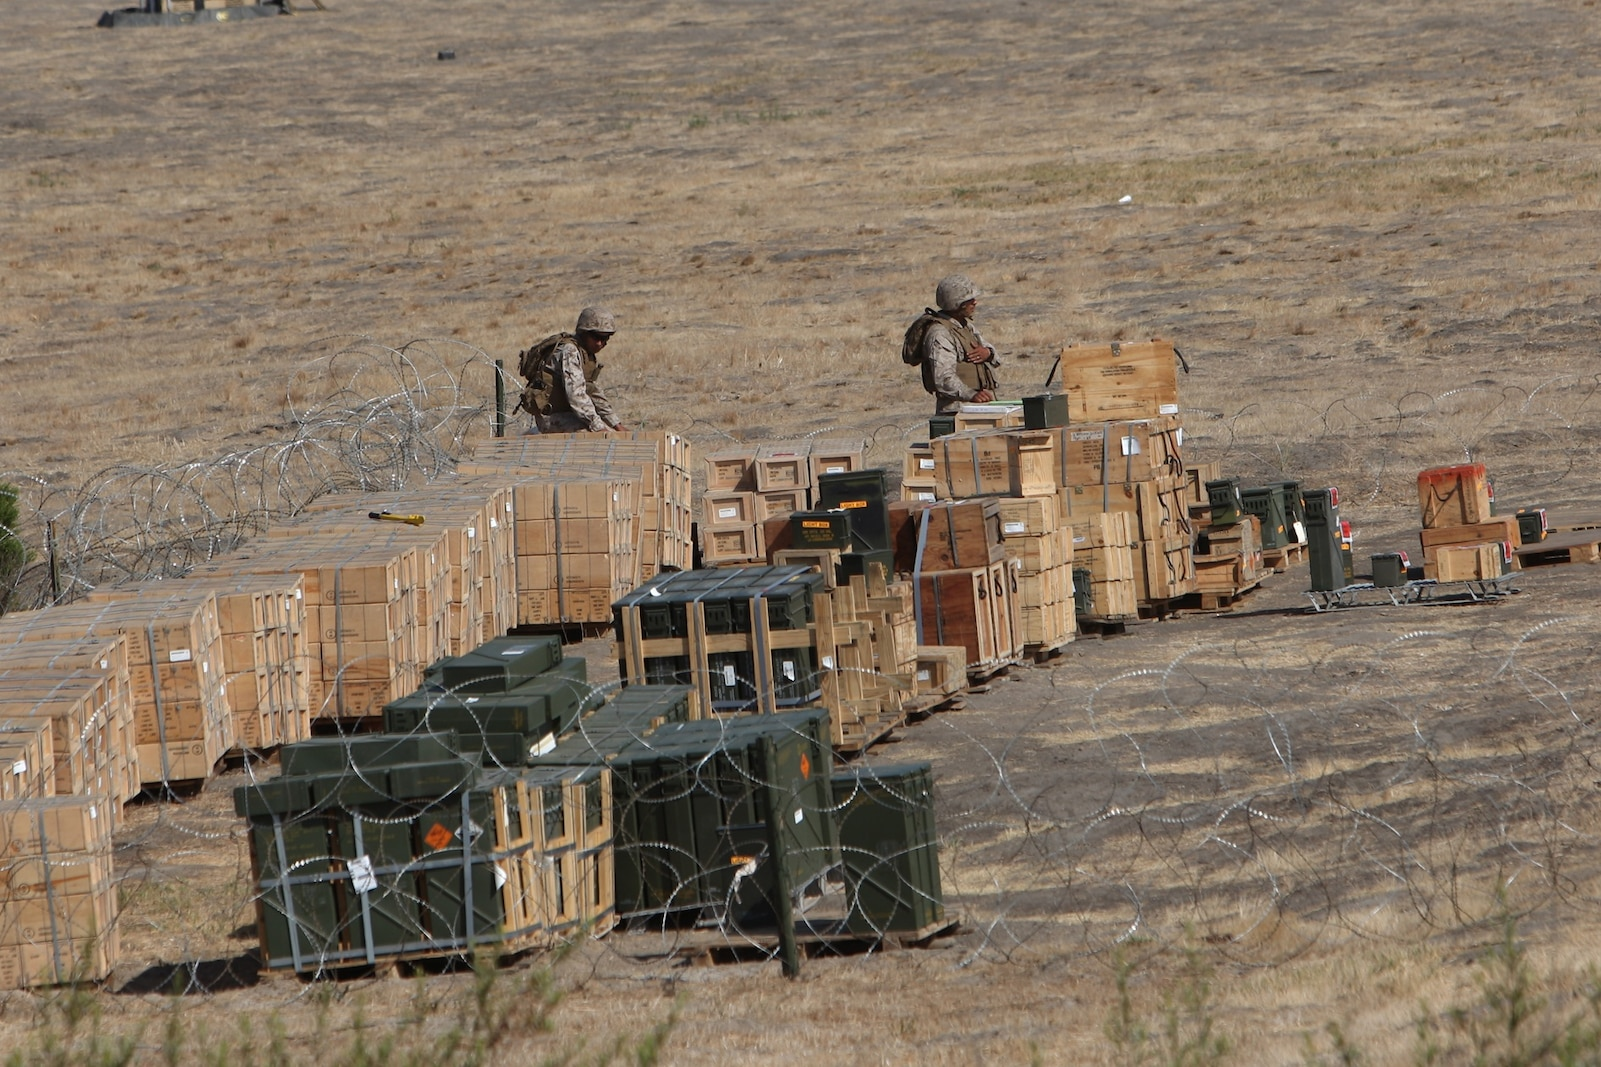 Marines with 1st Supply Battalion, Combat Logistics Regiment 15, 1st Marine Logistics Group, stage ammunition during an ammunition resupply exercise aboard Camp Pendleton, Calif., Aug. 23, 2013. From Aug. 16-30, 1st Supply Bn. is expected to transport approximately 100,000 pounds of ammunition in support of exercises conducted by the 11th Marine Regiment, 1st Marine Division.